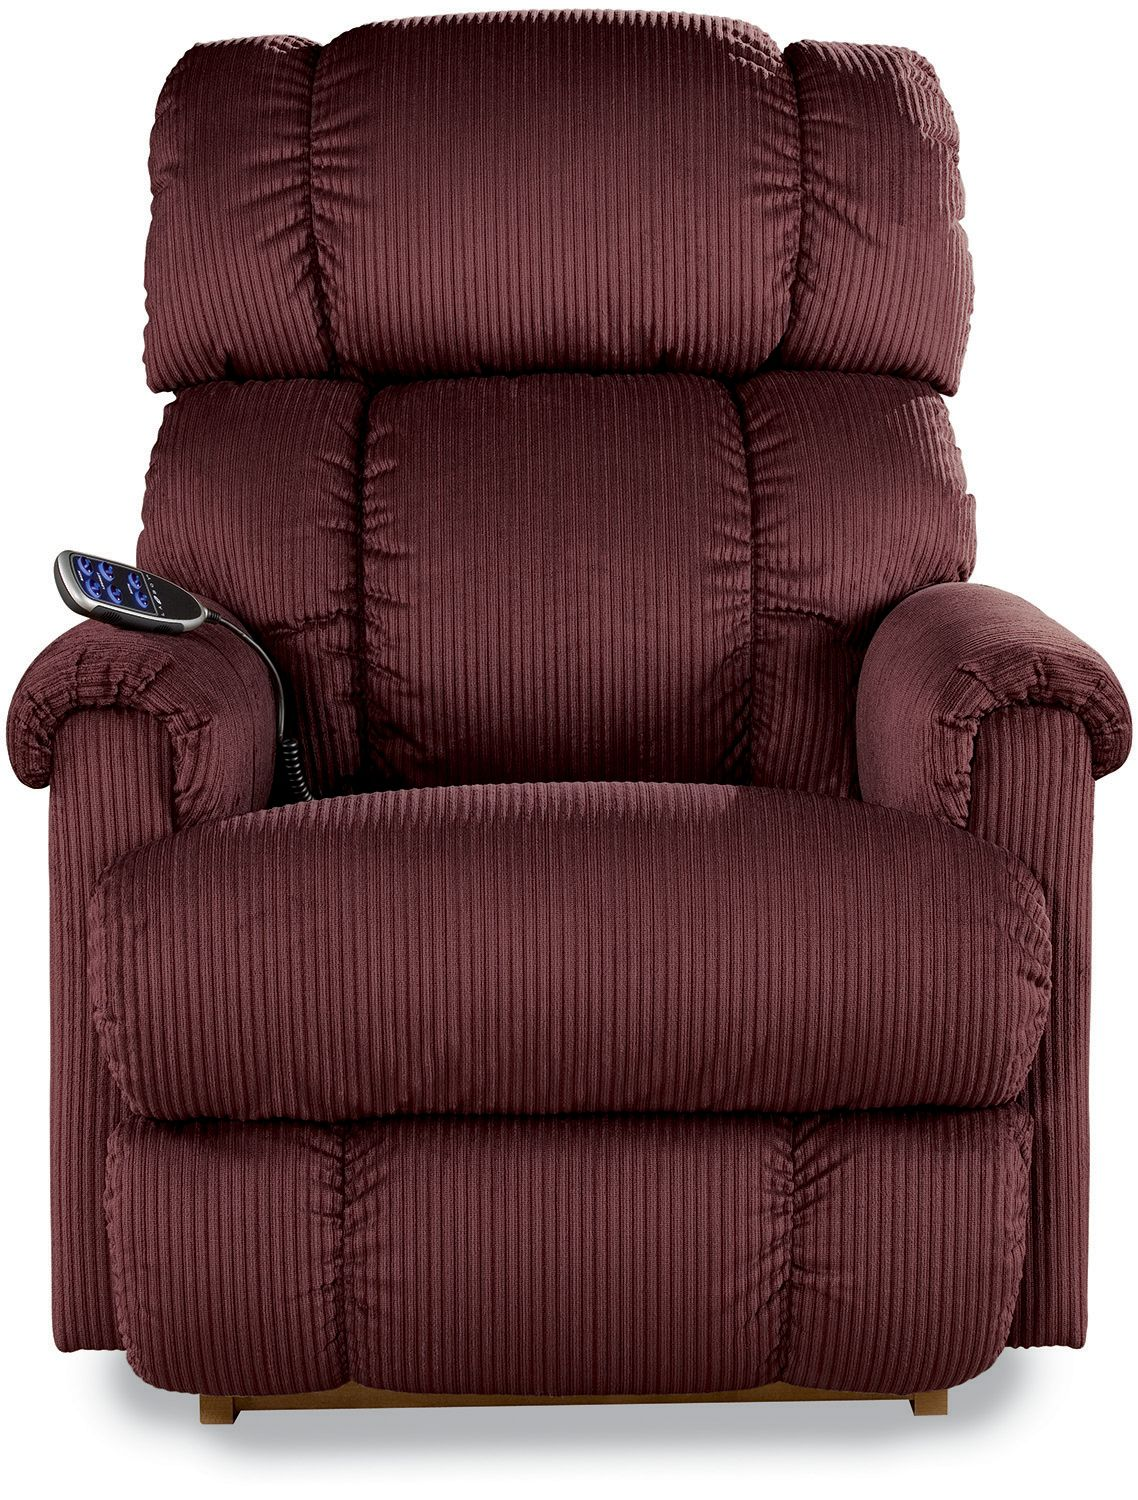 La-Z-Boy SNUGGLE POWER RECLINER BERRY